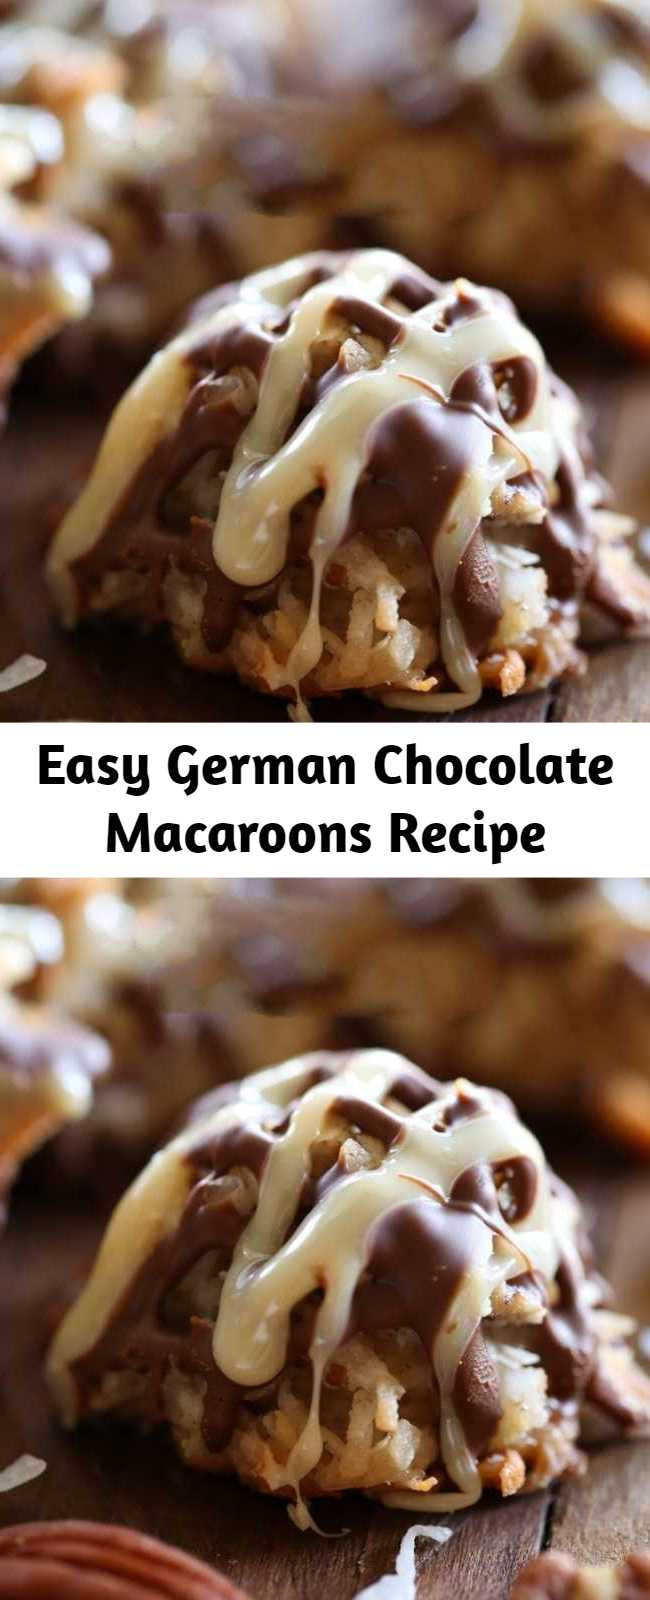 Easy German Chocolate Macaroons Recipe - These cookies are SO delicious! If you love german chocolate, then you are going to go crazy over these!